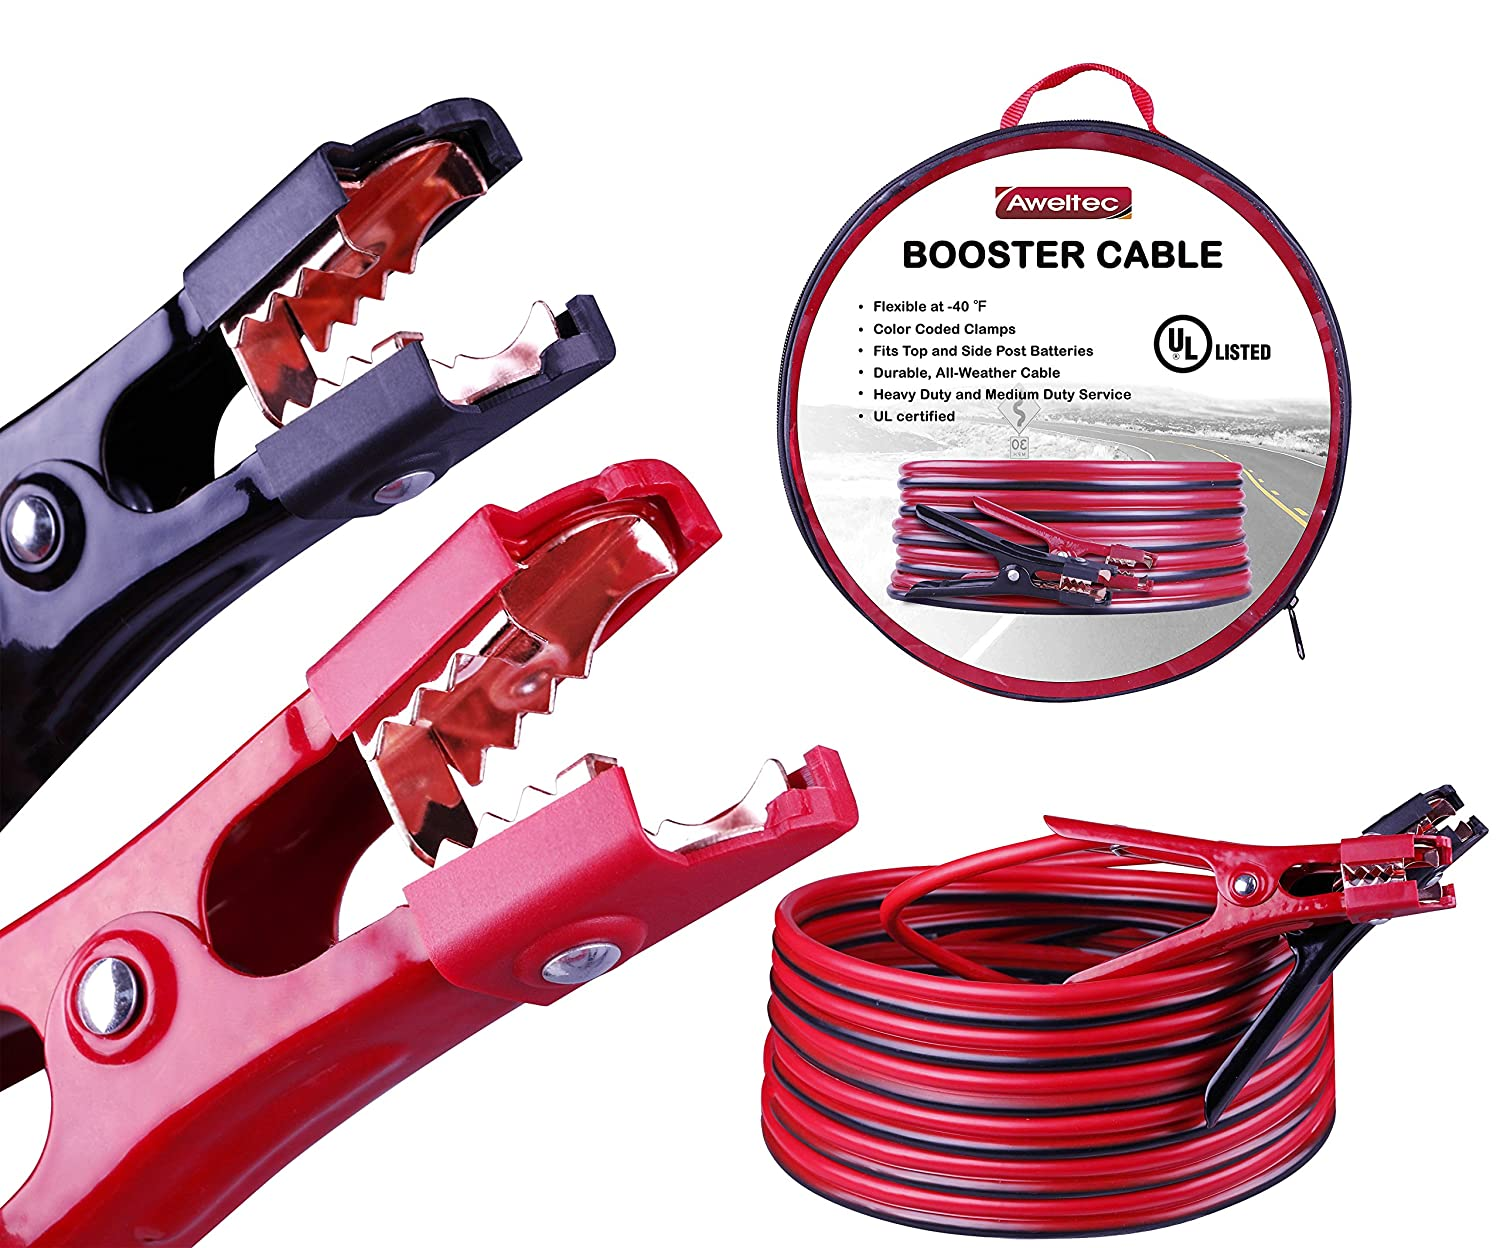 AWELTEC Battery Jumper Cables 4 Gauge 20 Feet Heavy Duty Booster Cables (4AWG x 20Ft) UL Listed ZHEJIANG ALL ROAD INDUSTRIAL CO. LTD.